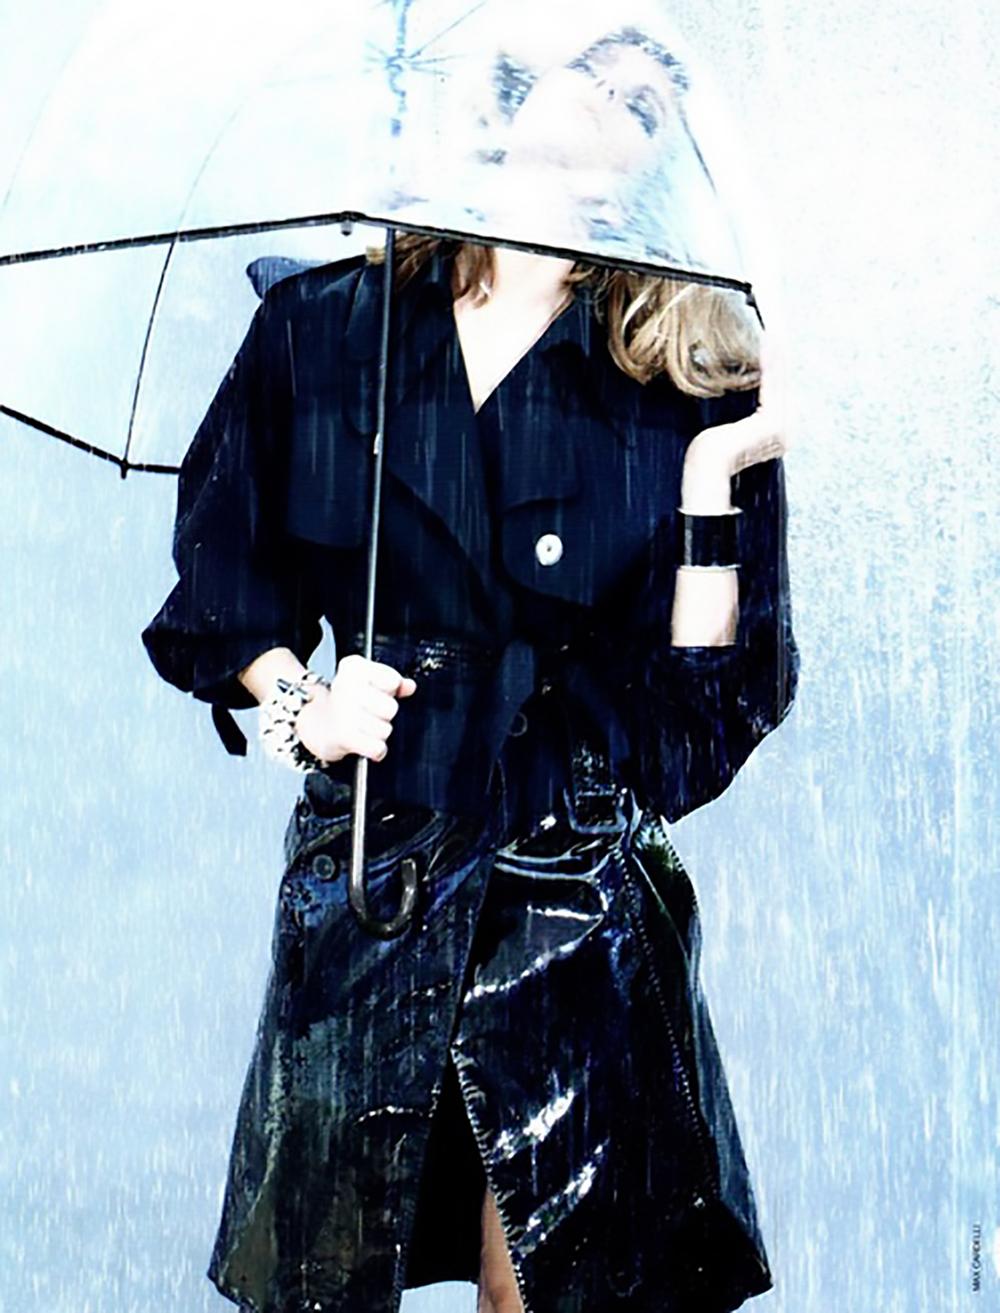 visual optimism black rain marie claire italia september 2011_2 rain gear 1500.jpg